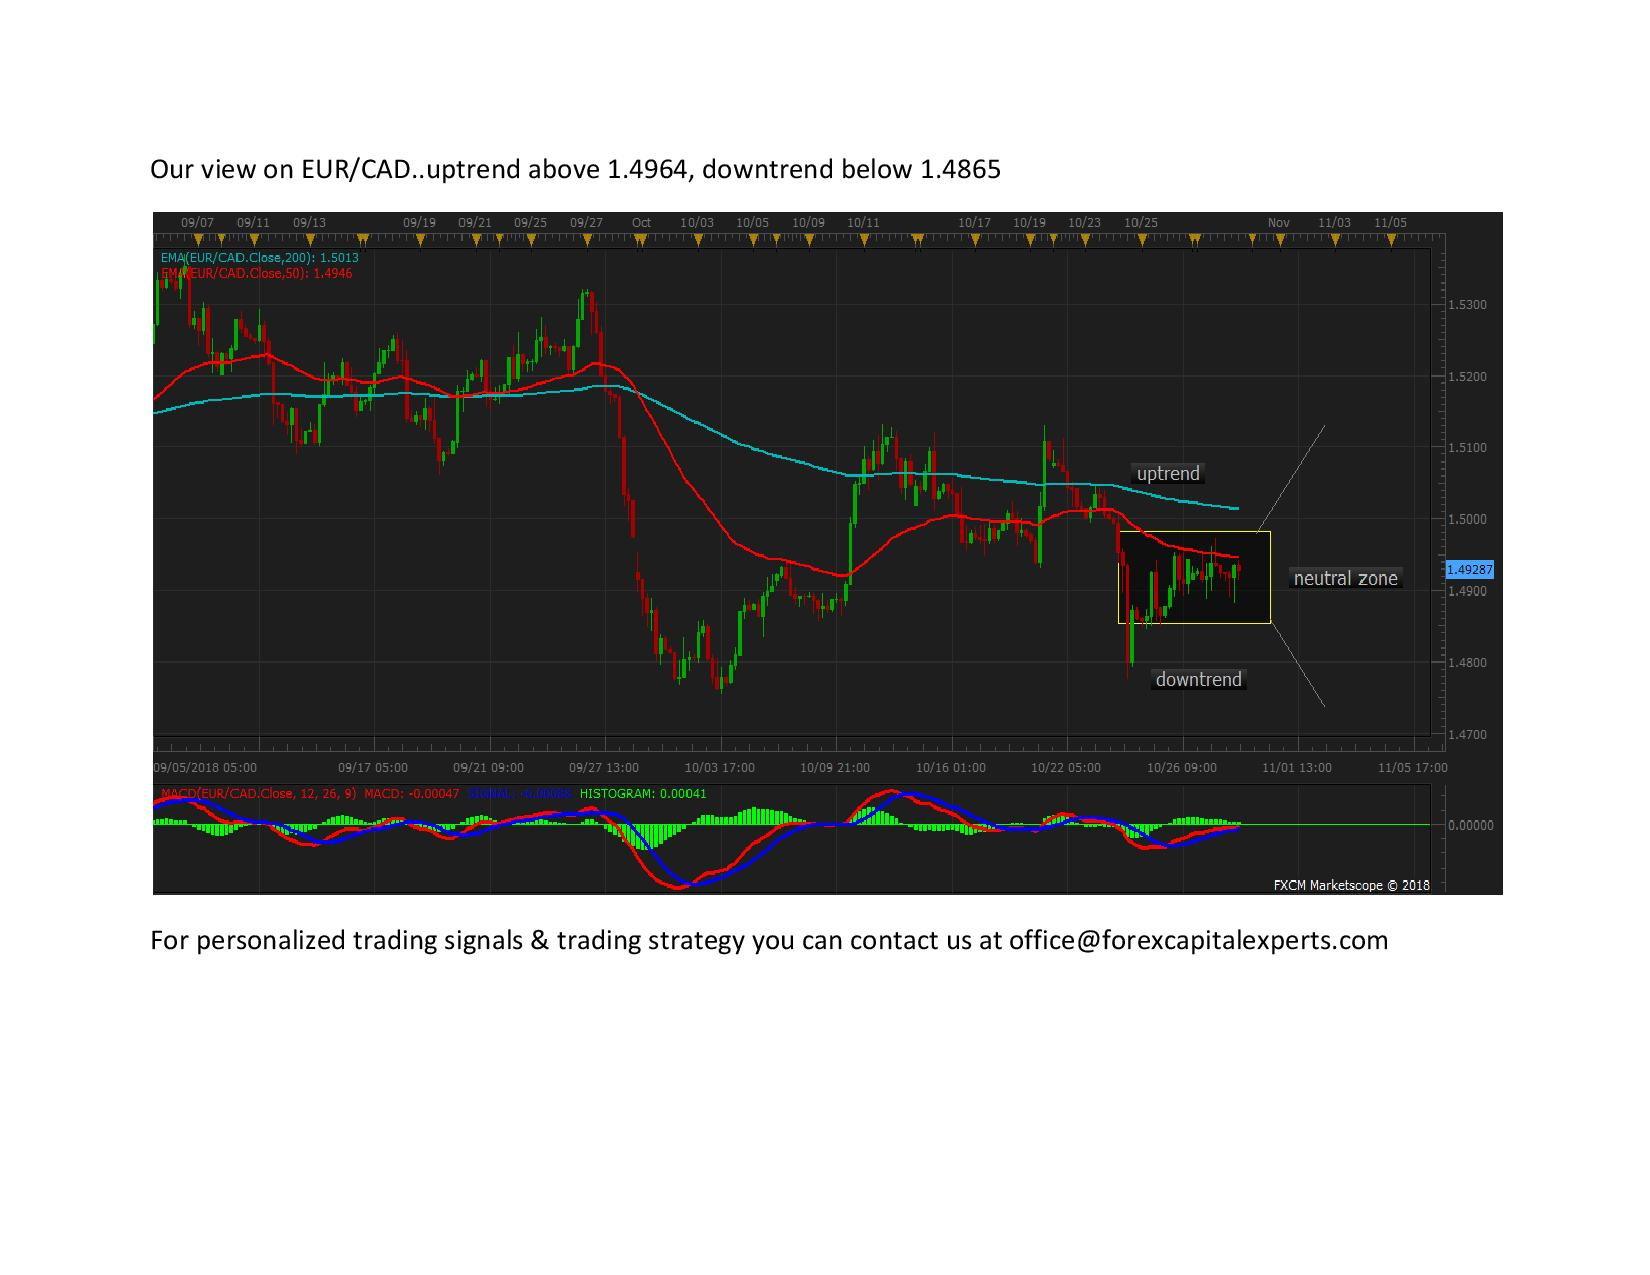 EURCAD page 001